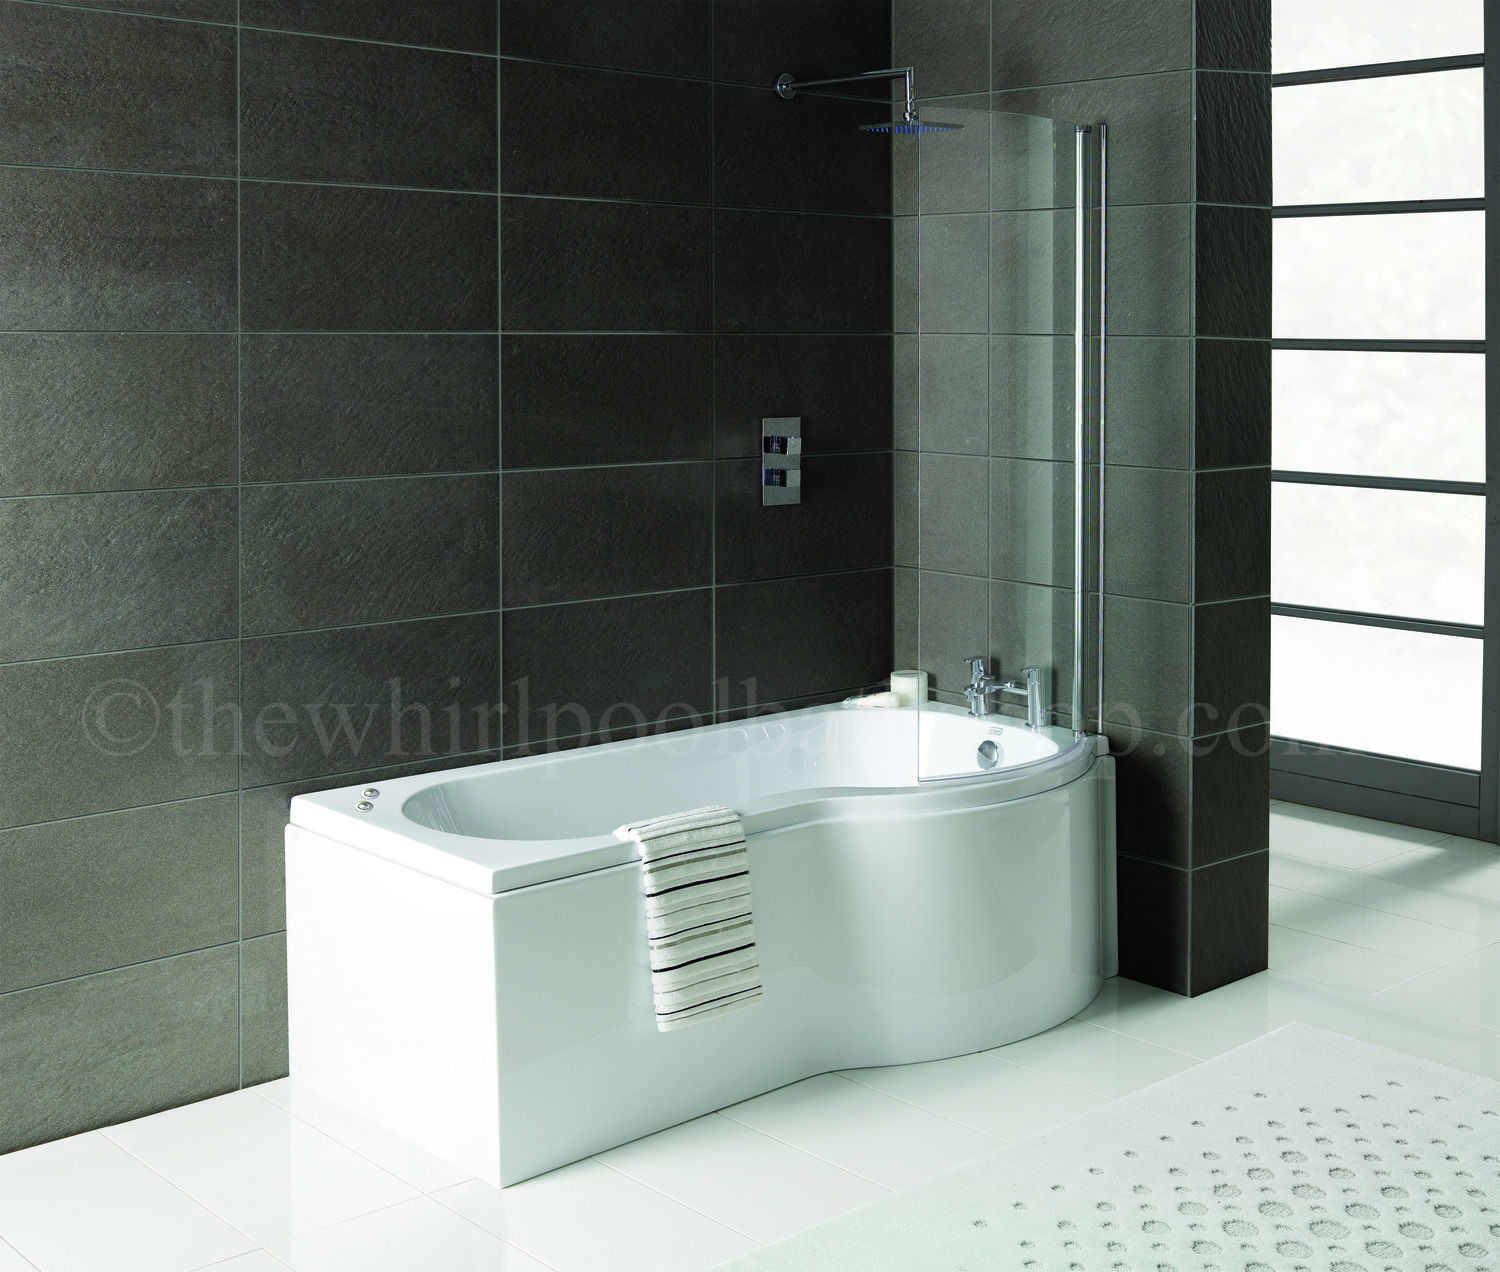 Rh Oceania 12 Jet P Shape Whirlpool Shower Bath